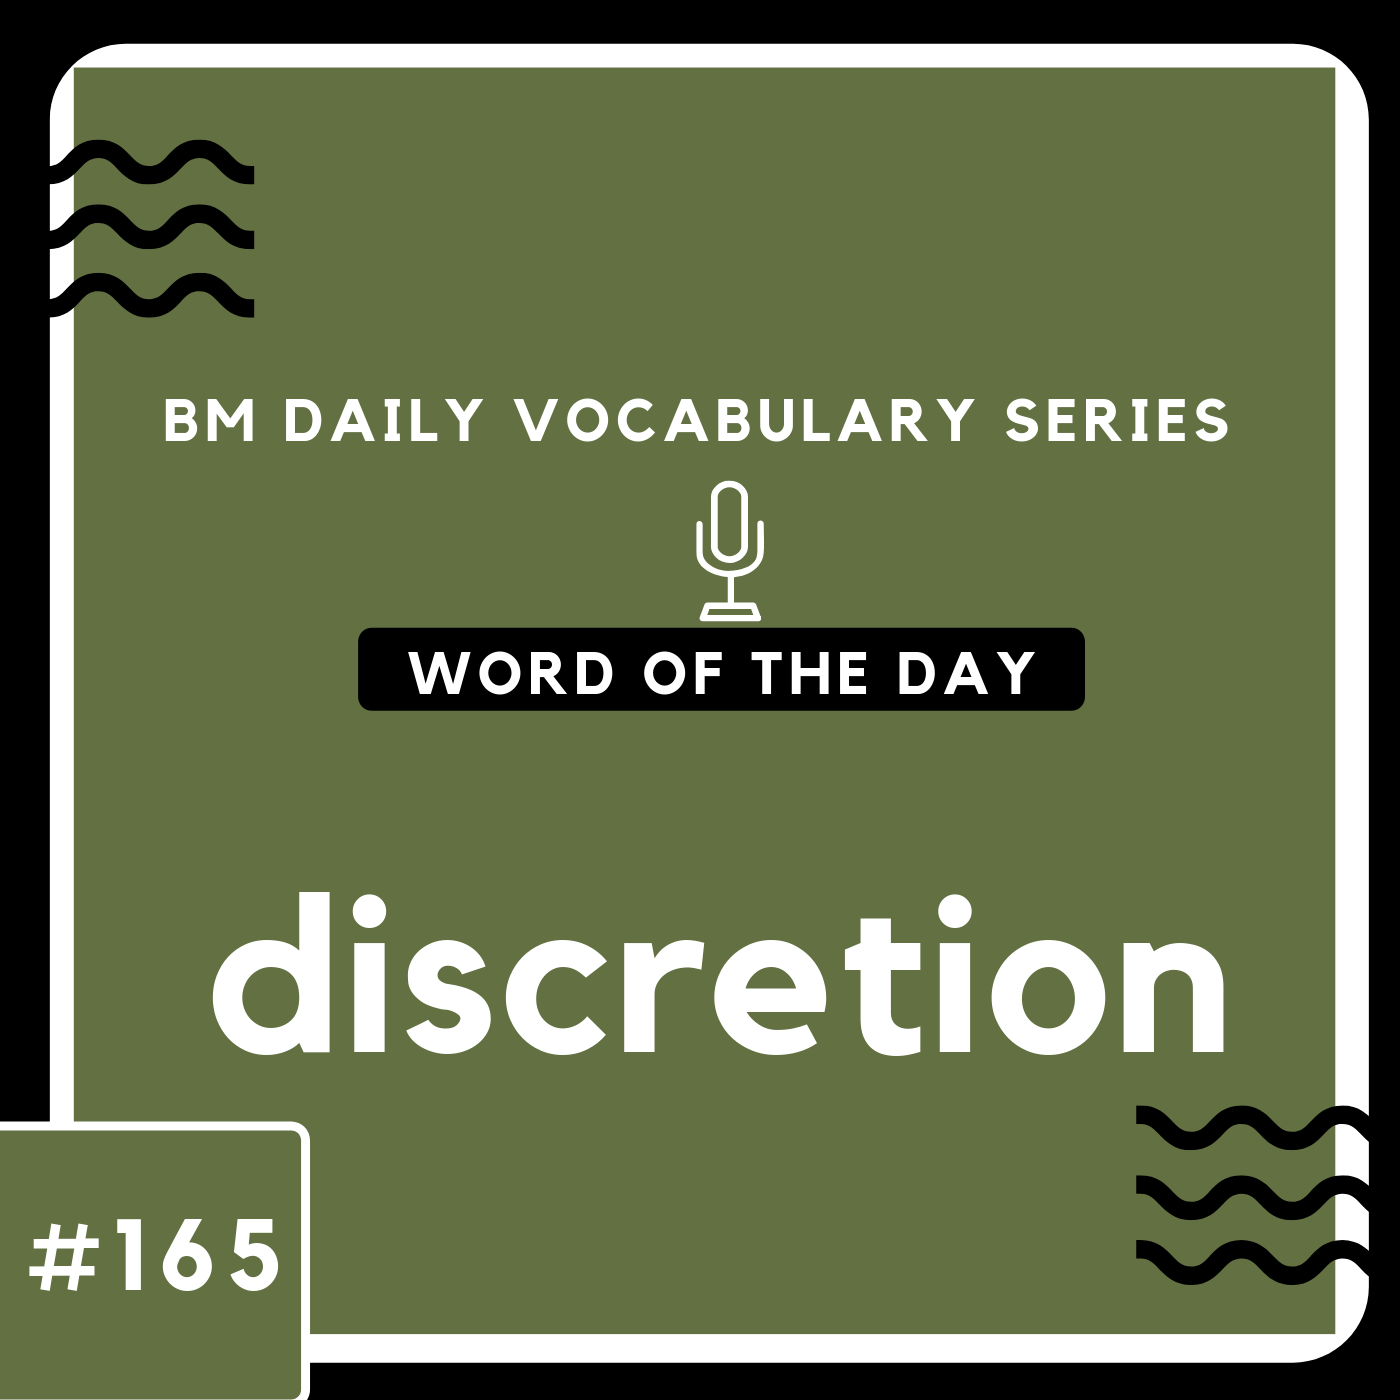 200 BM Daily Vocabulary #165 | discretion